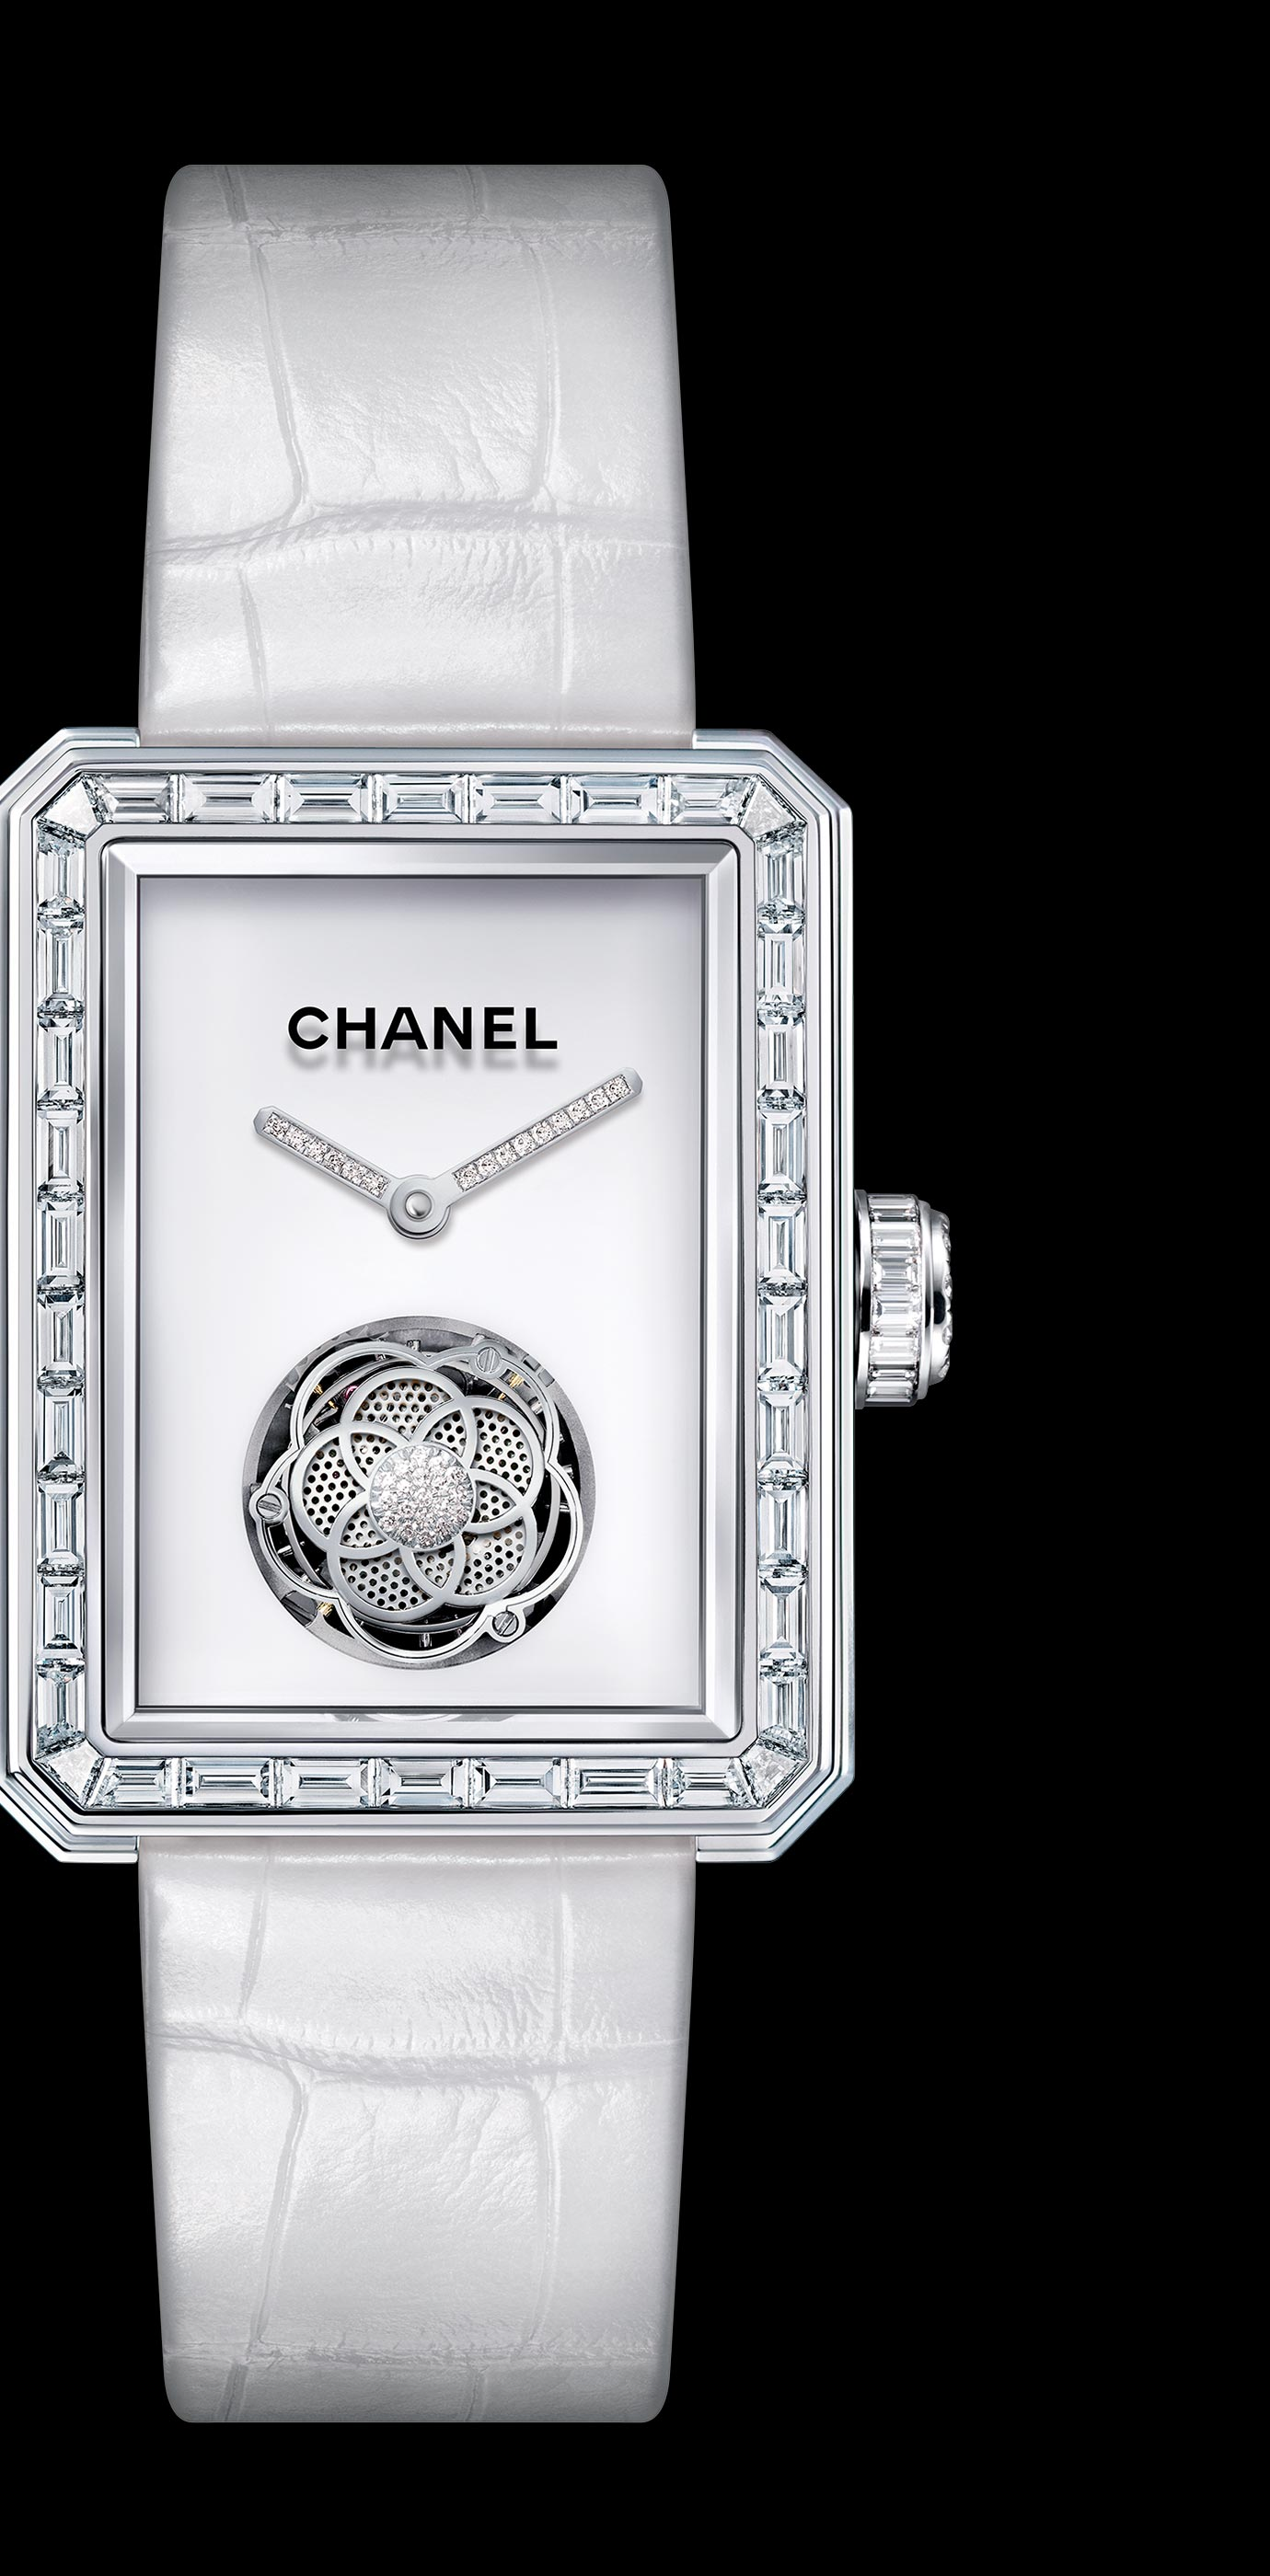 Première Flying Tourbillon watch in 18K white gold, case, bezel and crown set with baguette and brilliant cut diamonds.